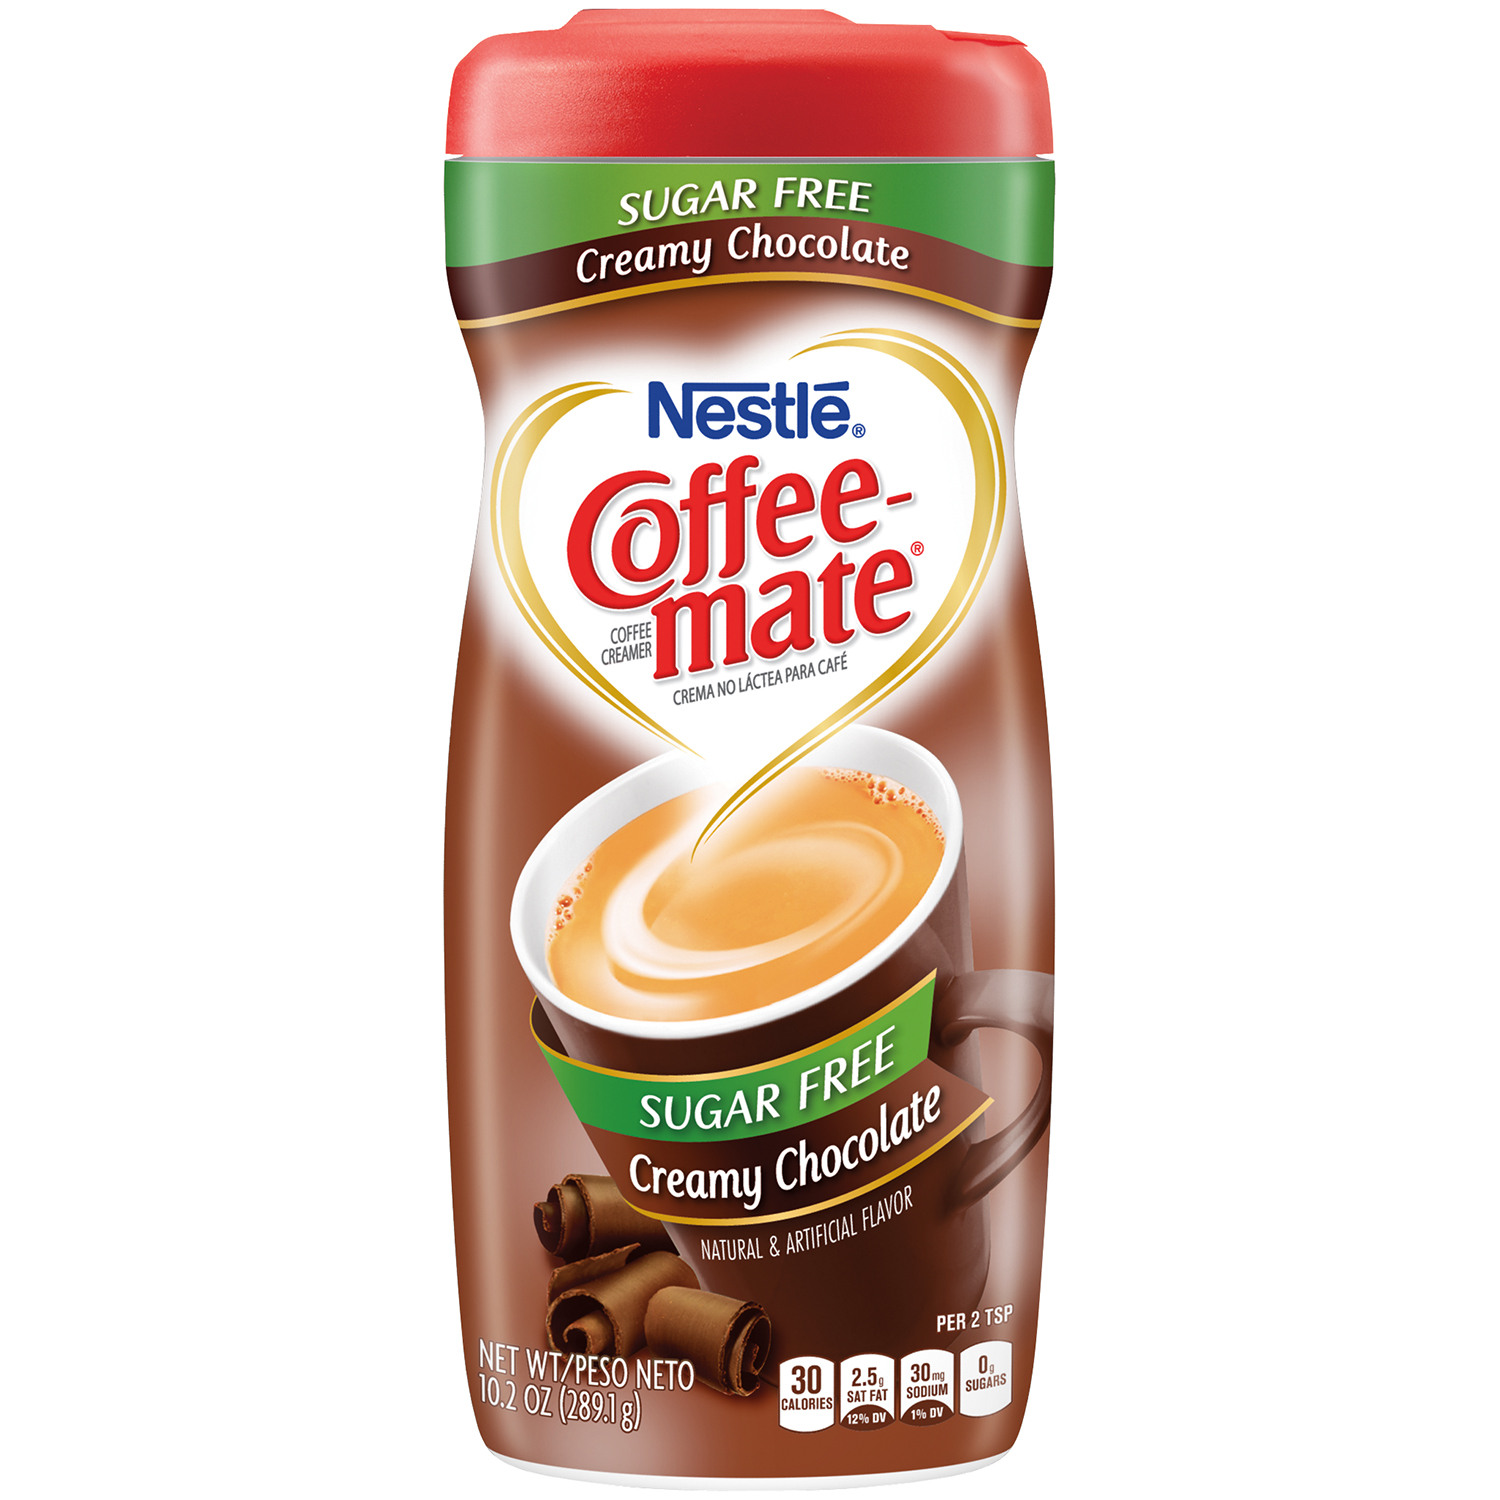 (6 Pack) COFFEE-MATE Sugar Free Creamy Chocolate Powder Coffee Creamer 10.2 oz. Canister